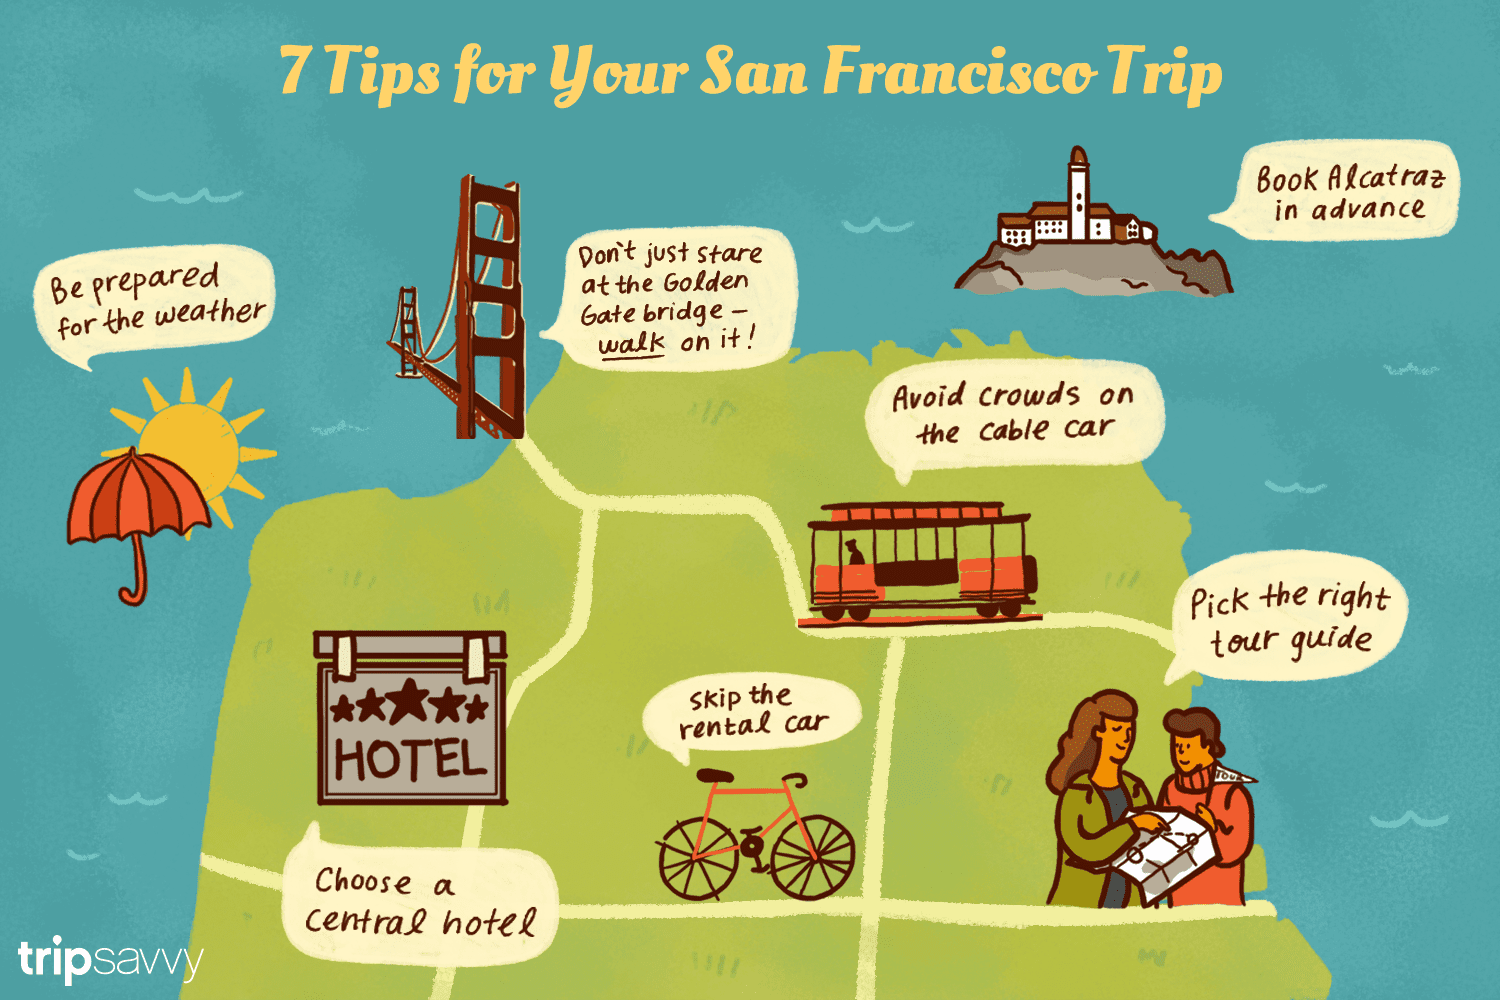 7 Tips for Your San Francisco Trip